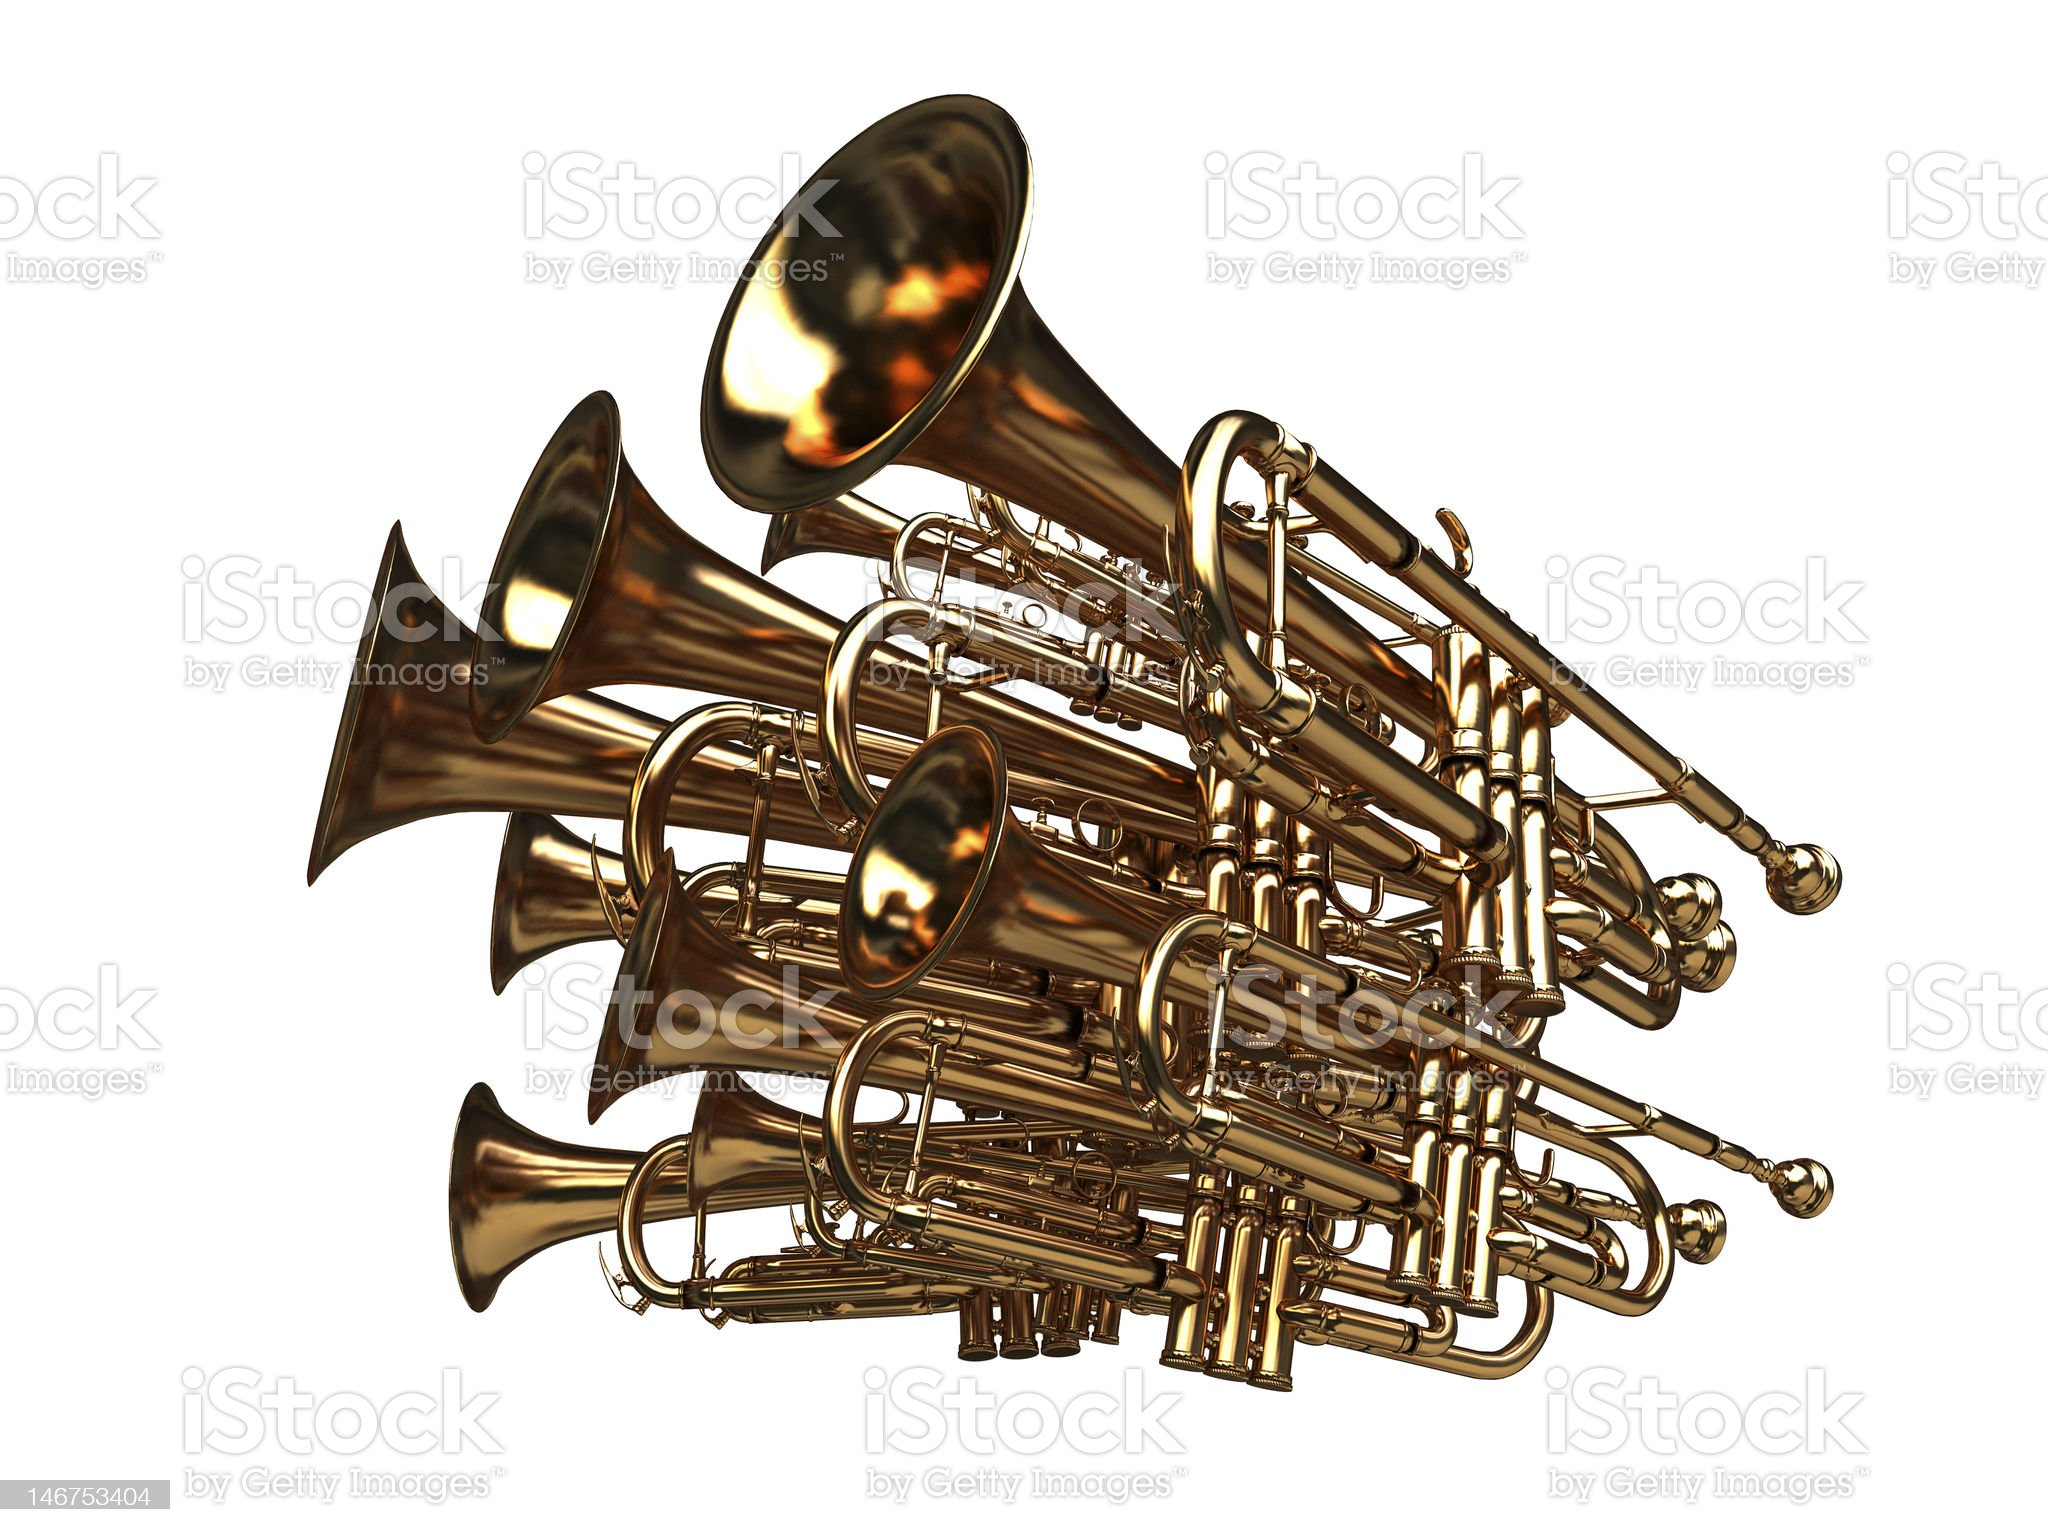 pack of trumpets - noise symbol royalty-free stock vector art